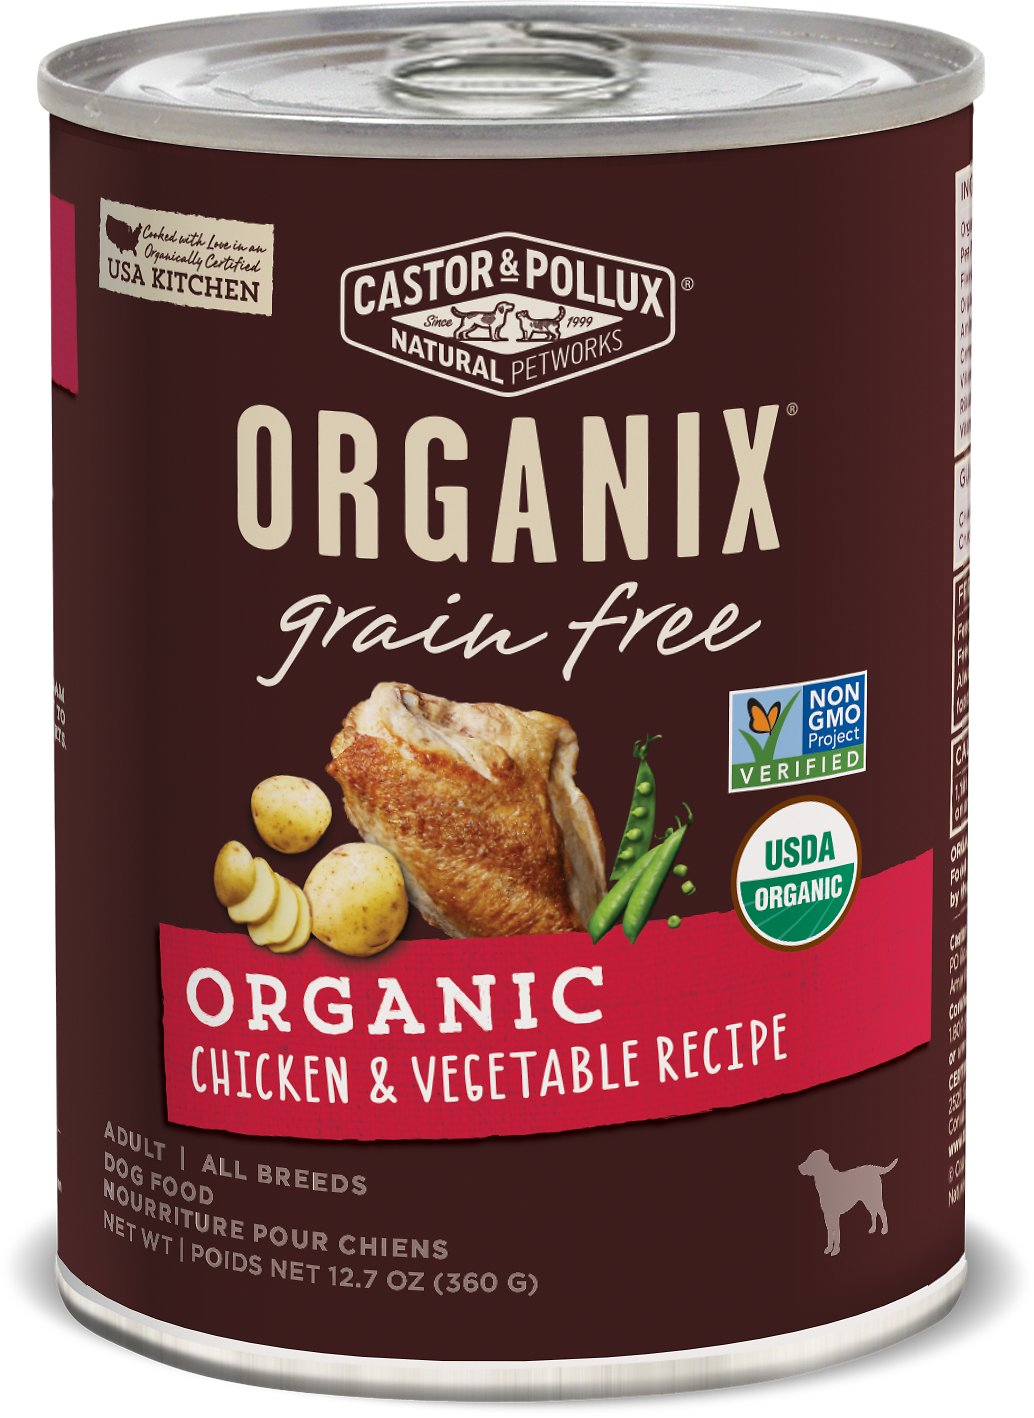 Organic Chicken Canned Dog Food